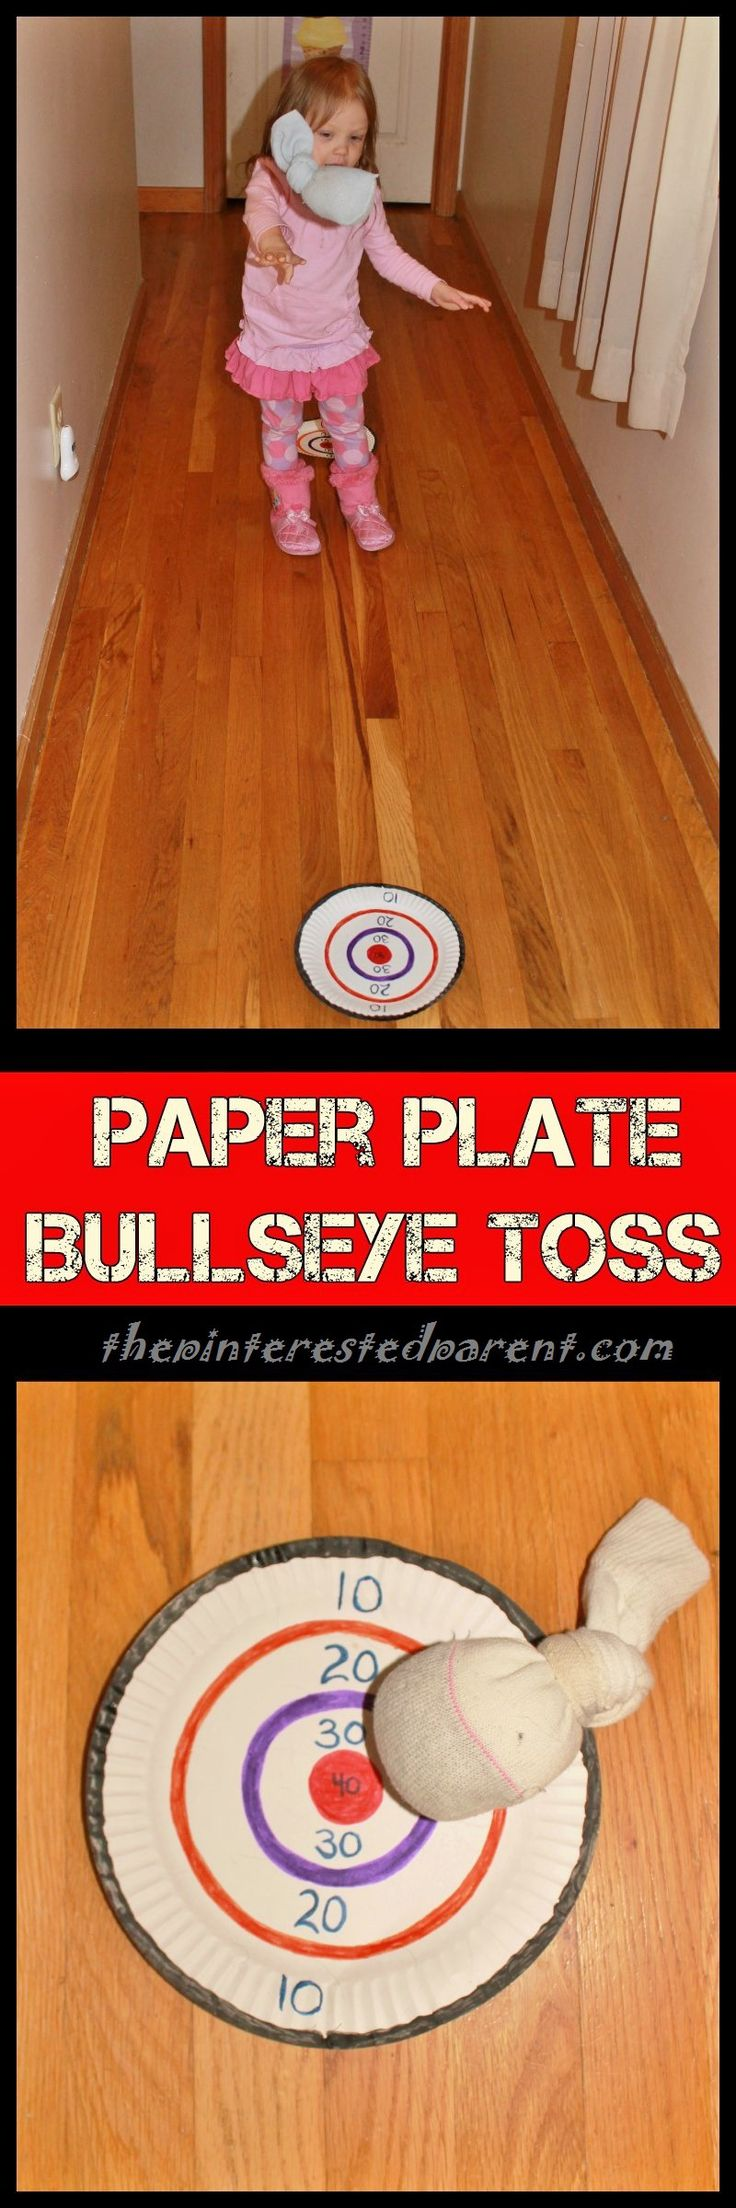 Paper Plate Bullseye Toss - the simplest activities are always the most fun